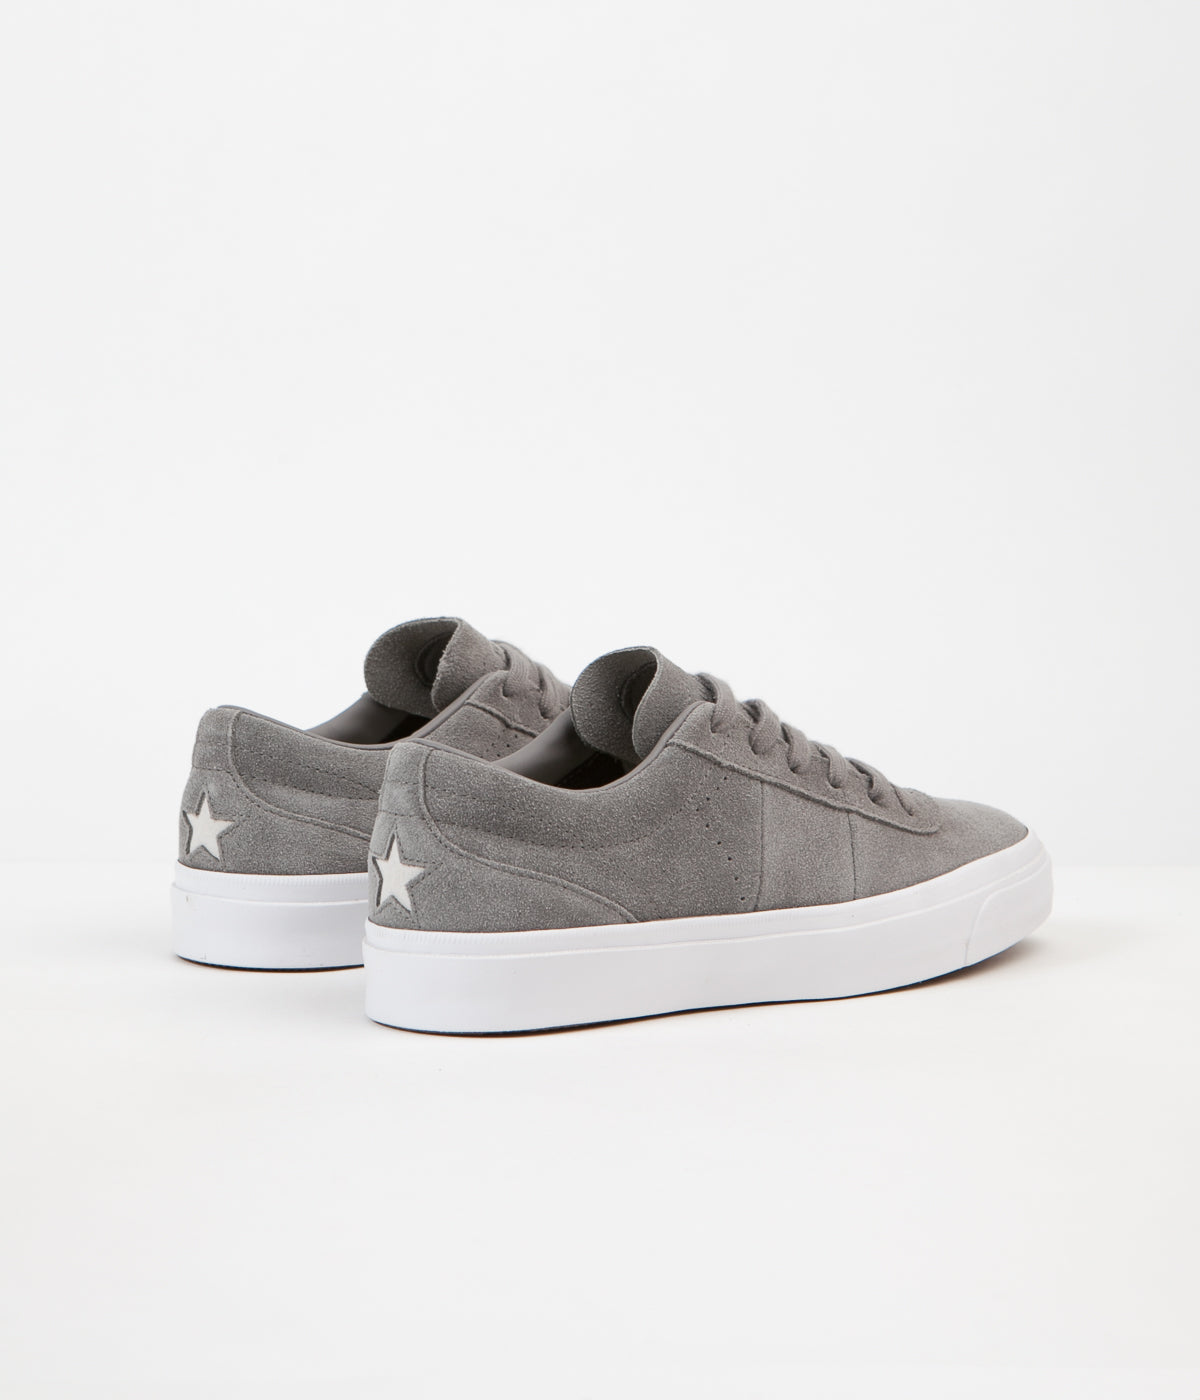 Converse One Star CC Ox Shoes - Charcoal Grey